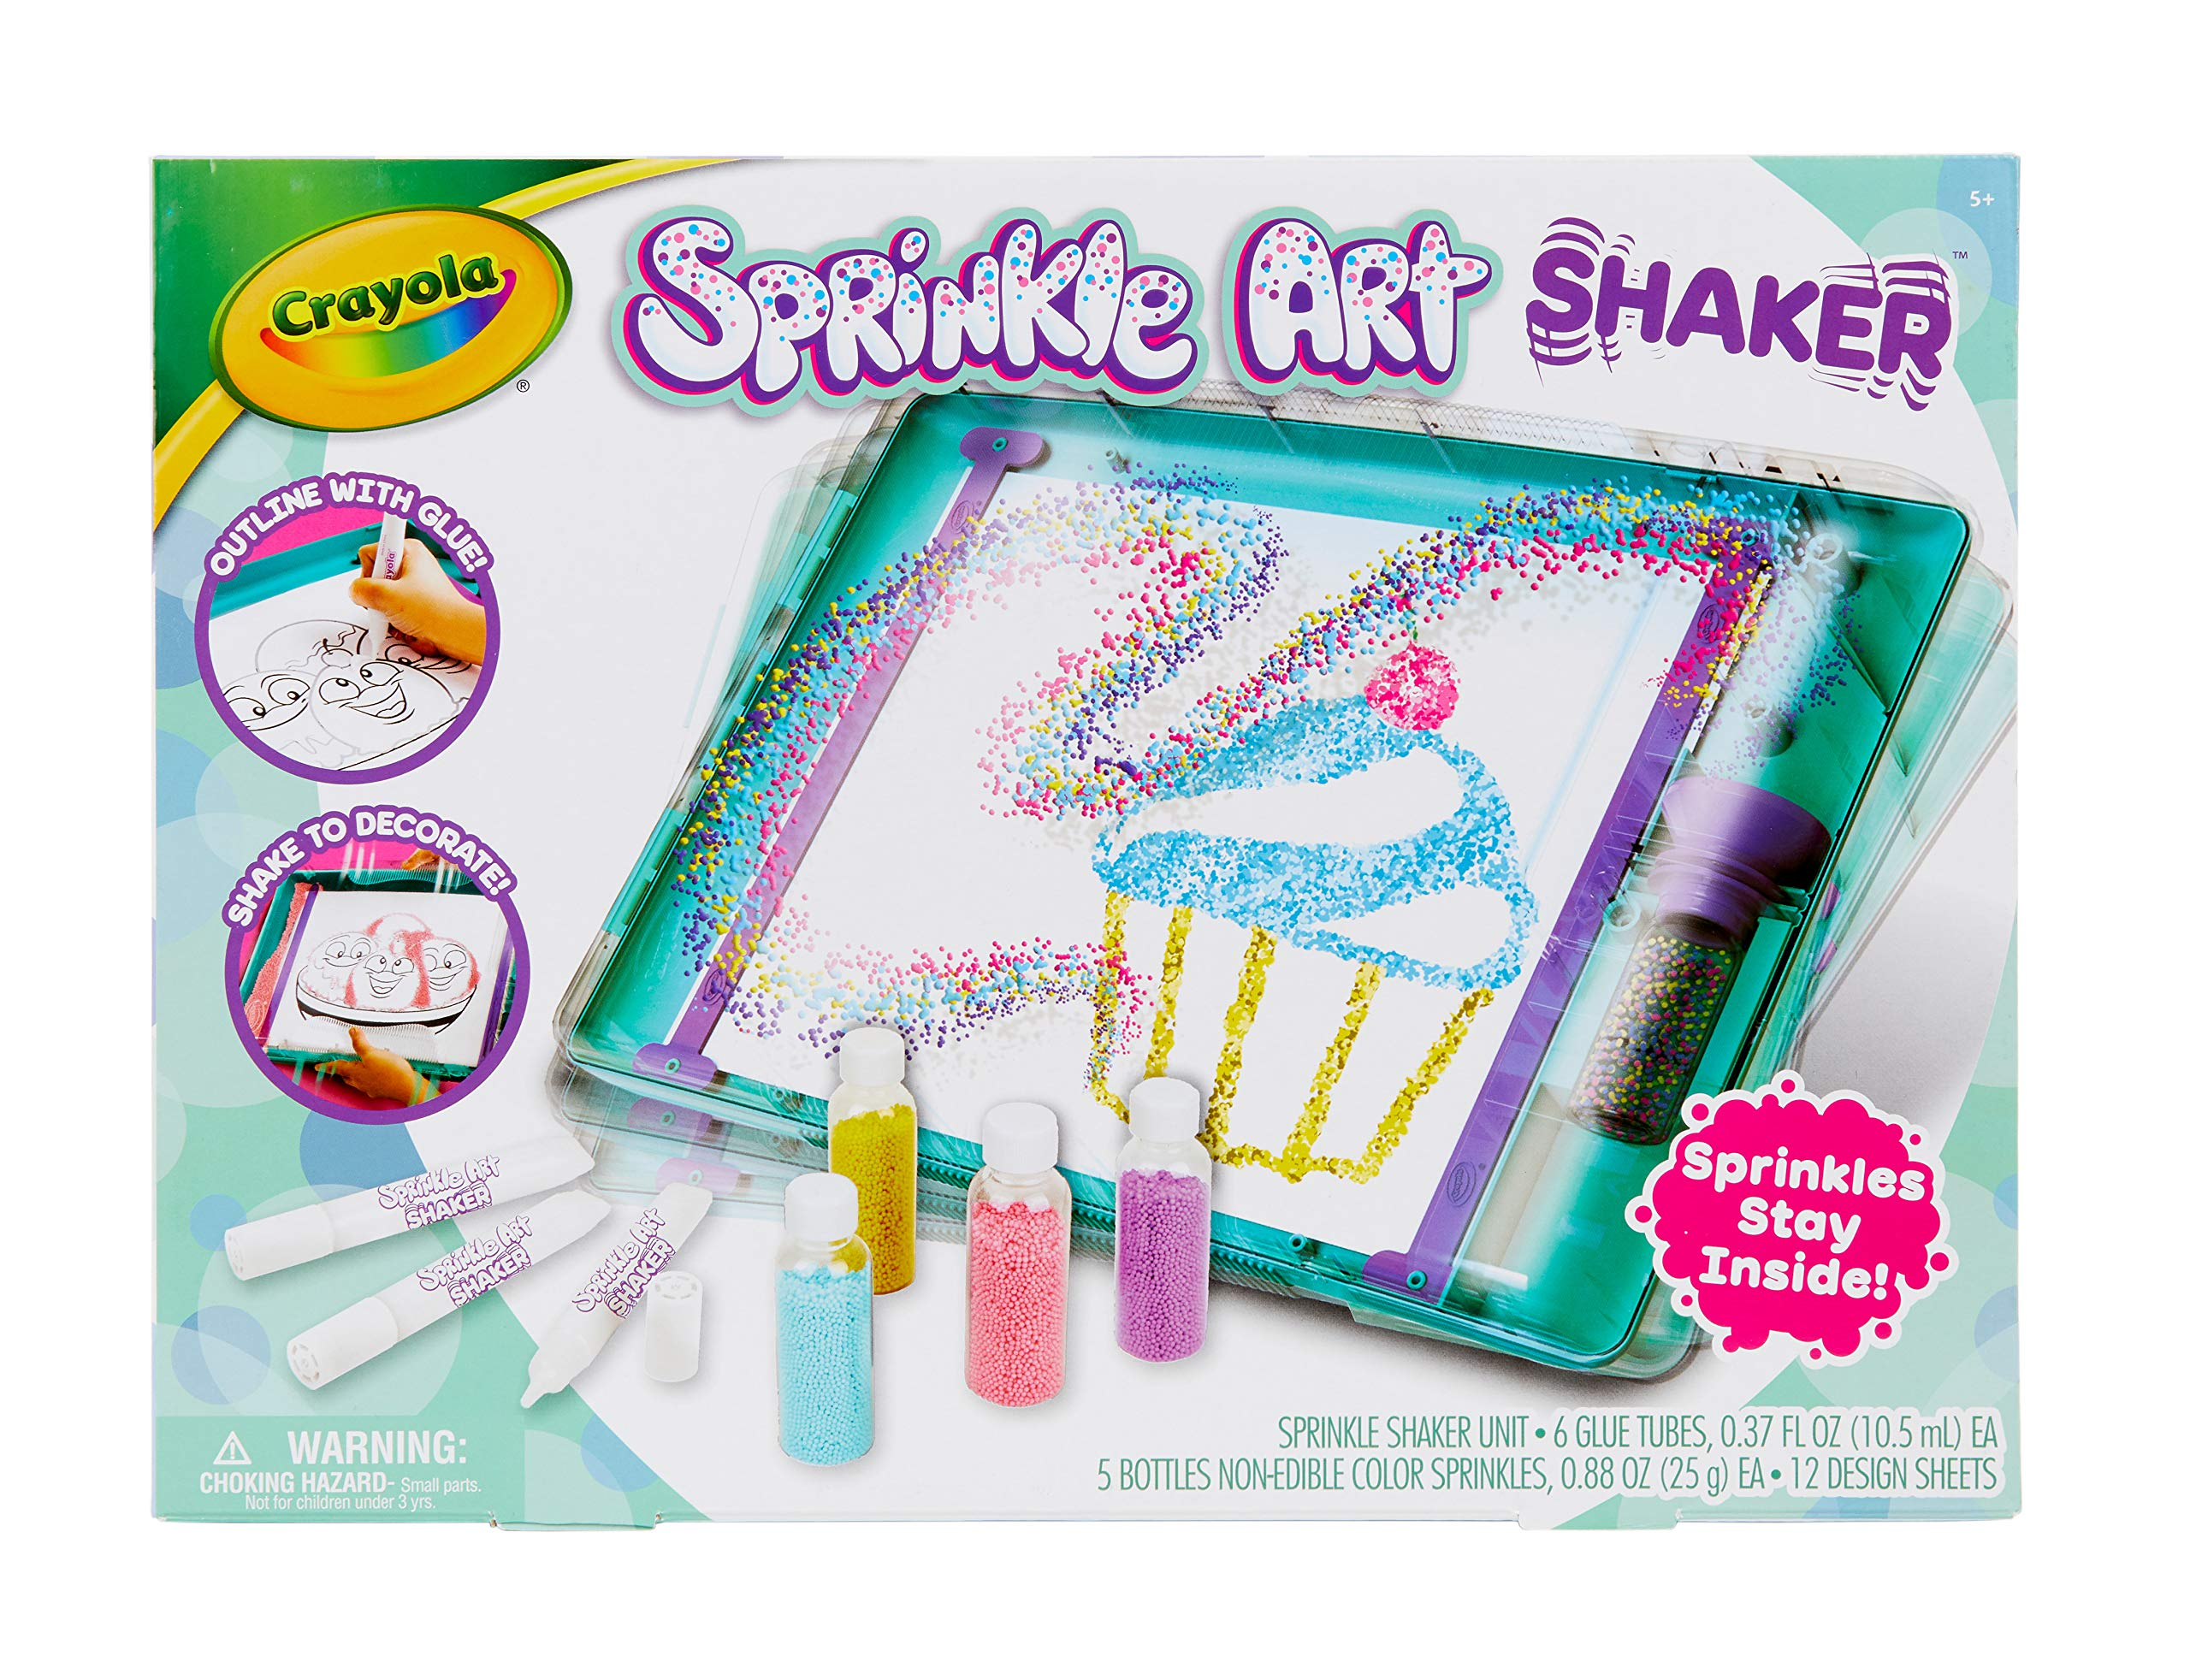 Crayola Sprinkle Art Shaker, Rainbow Arts & Crafts for Girls, at Home Crafts for Kids, Gift, Age 5, 6, 7, 8, Multicolor